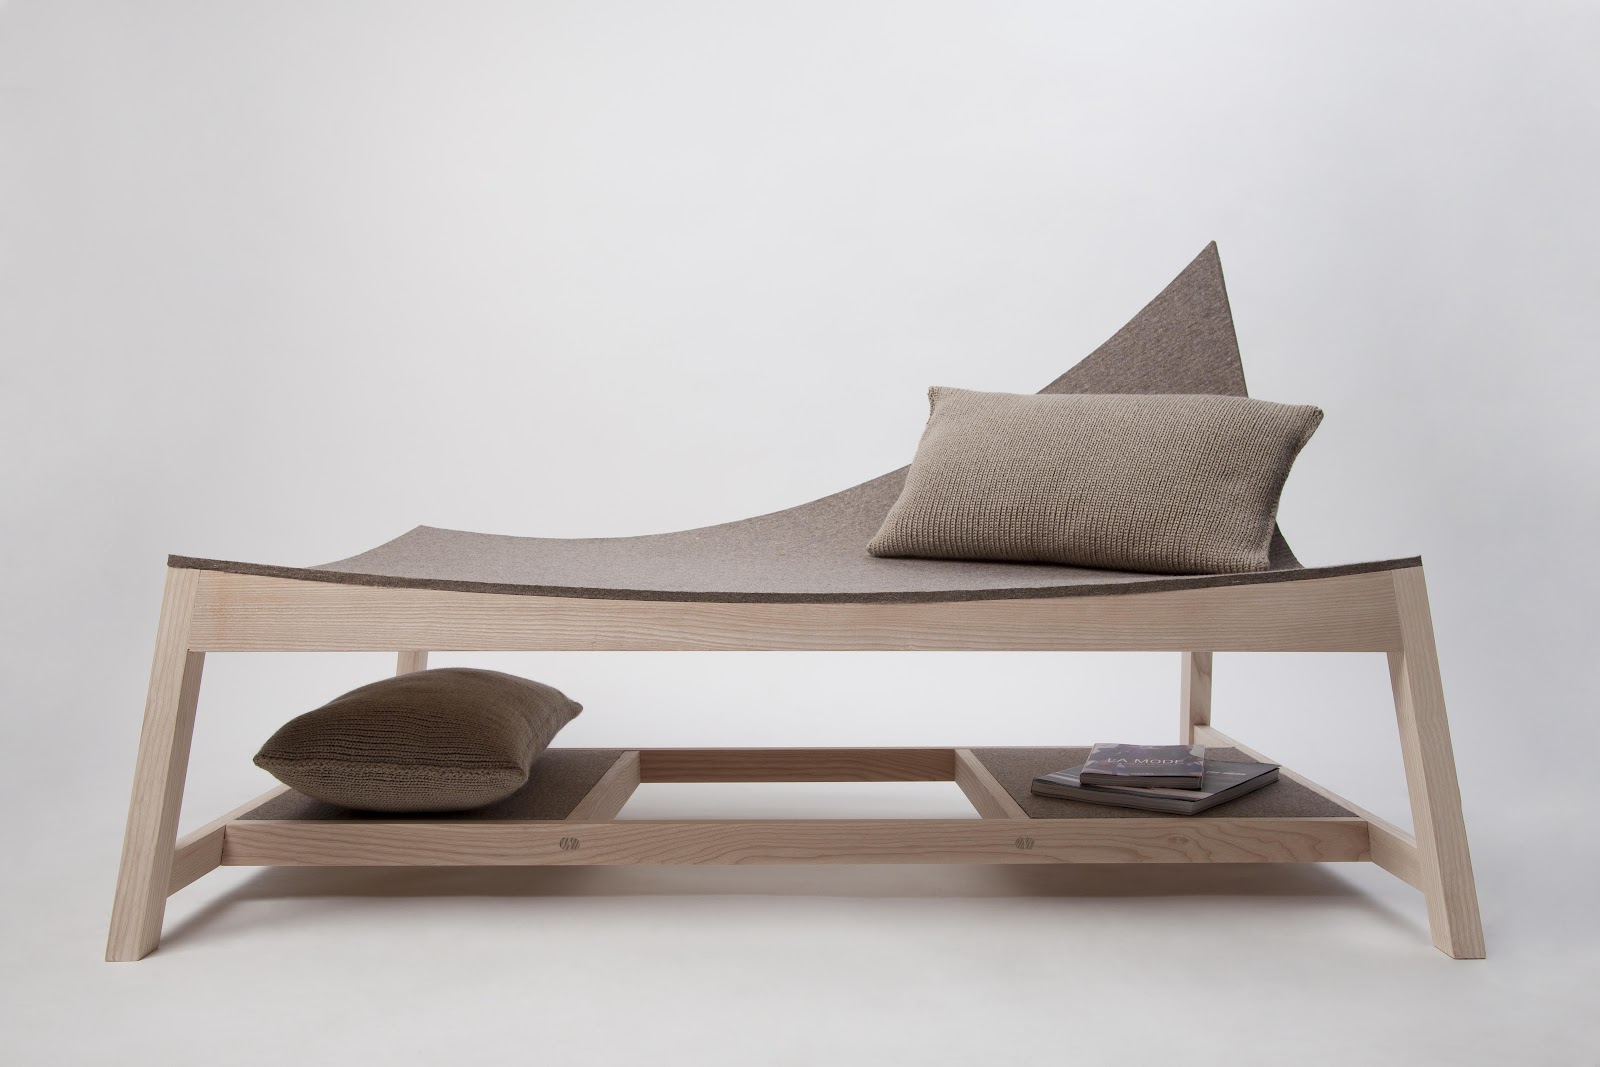 awesome-design-ideas-Experimental-Seating-Furniture-Tamas-Bozsik-2